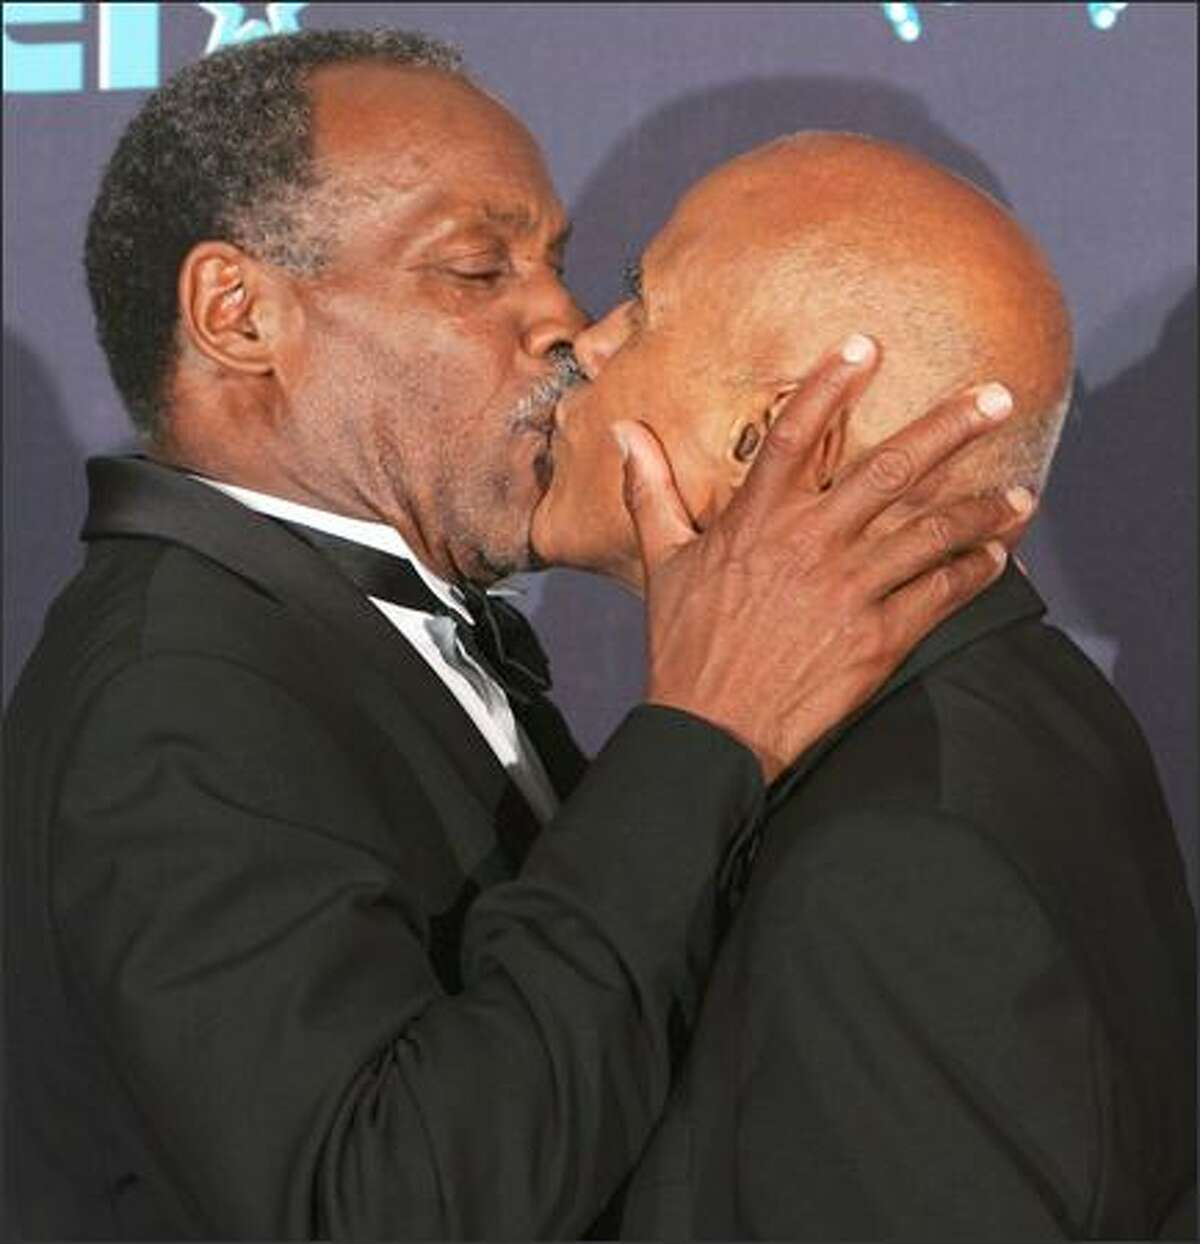 Brotherly love among stars is up close and personal. Presenter Danny Glover, left, kisses Harry Belafonte backstage after Belafonte received the Black Entertainment Television's humanitarian award during the sixth annual BET ceremony on Tuesday in Los Angeles.